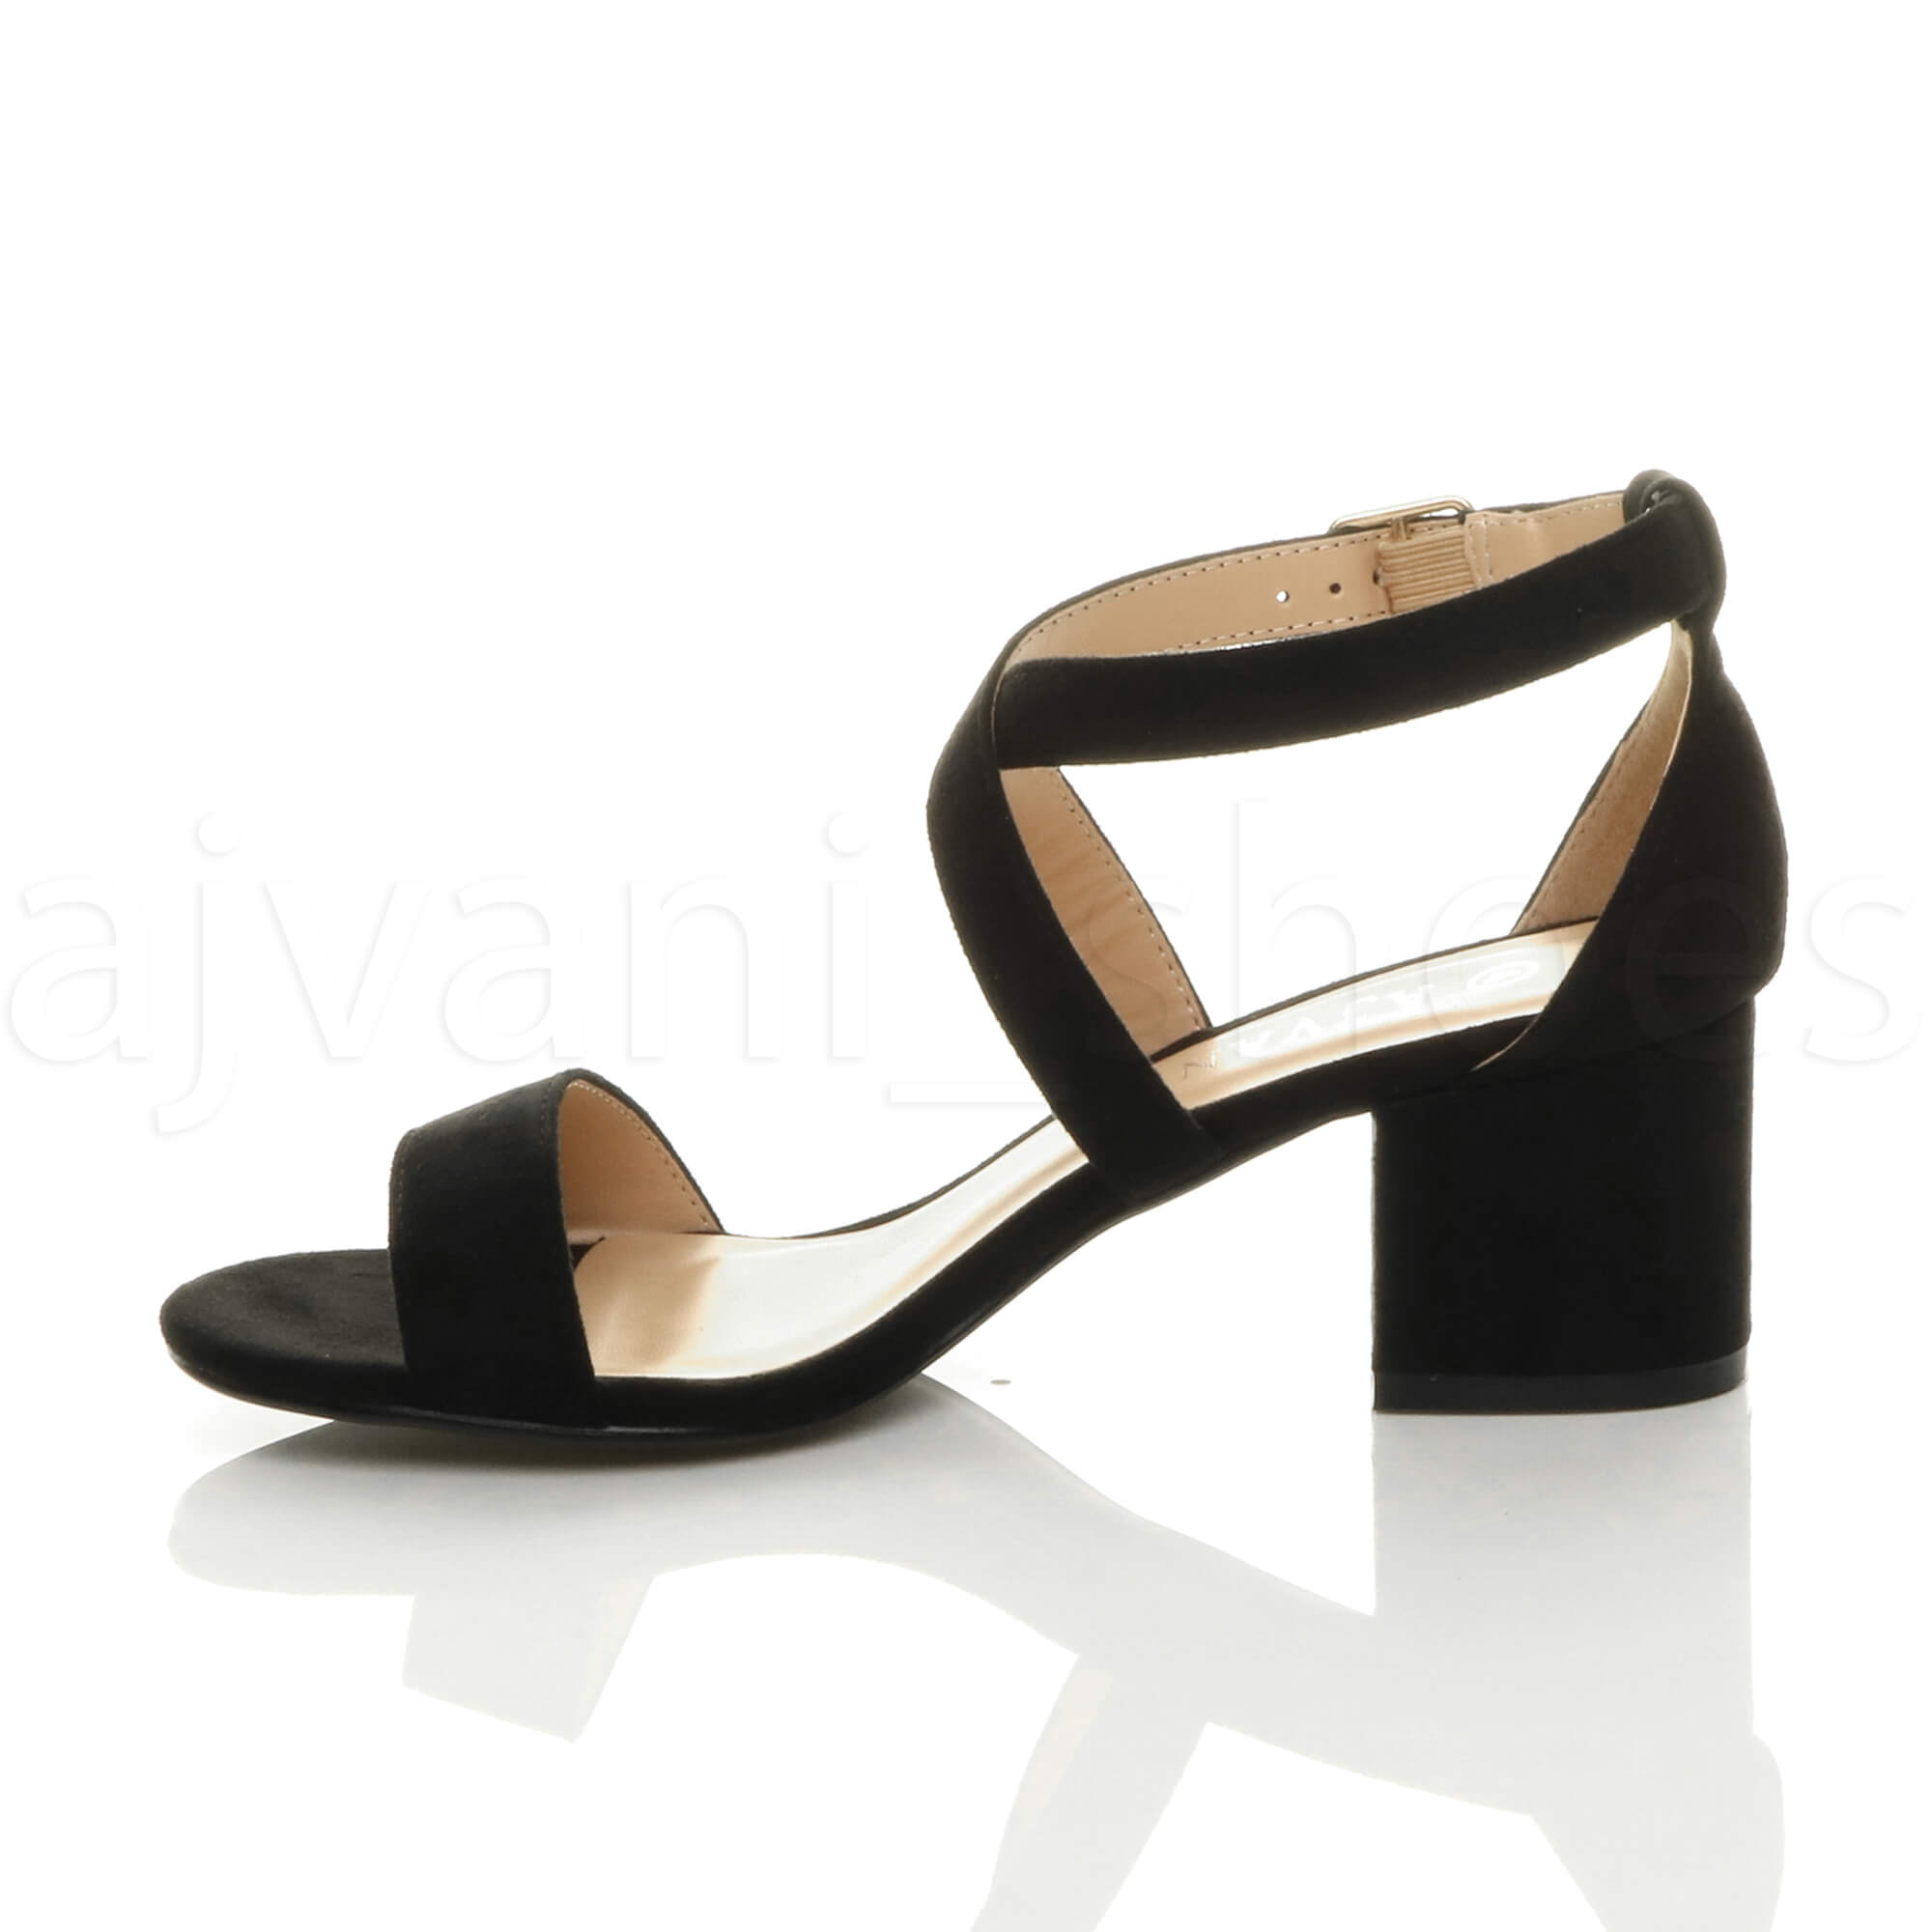 WOMENS-LADIES-MID-LOW-BLOCK-HEEL-CROSS-STRAPS-PARTY-STRAPPY-SANDALS-SHOES-SIZE thumbnail 6